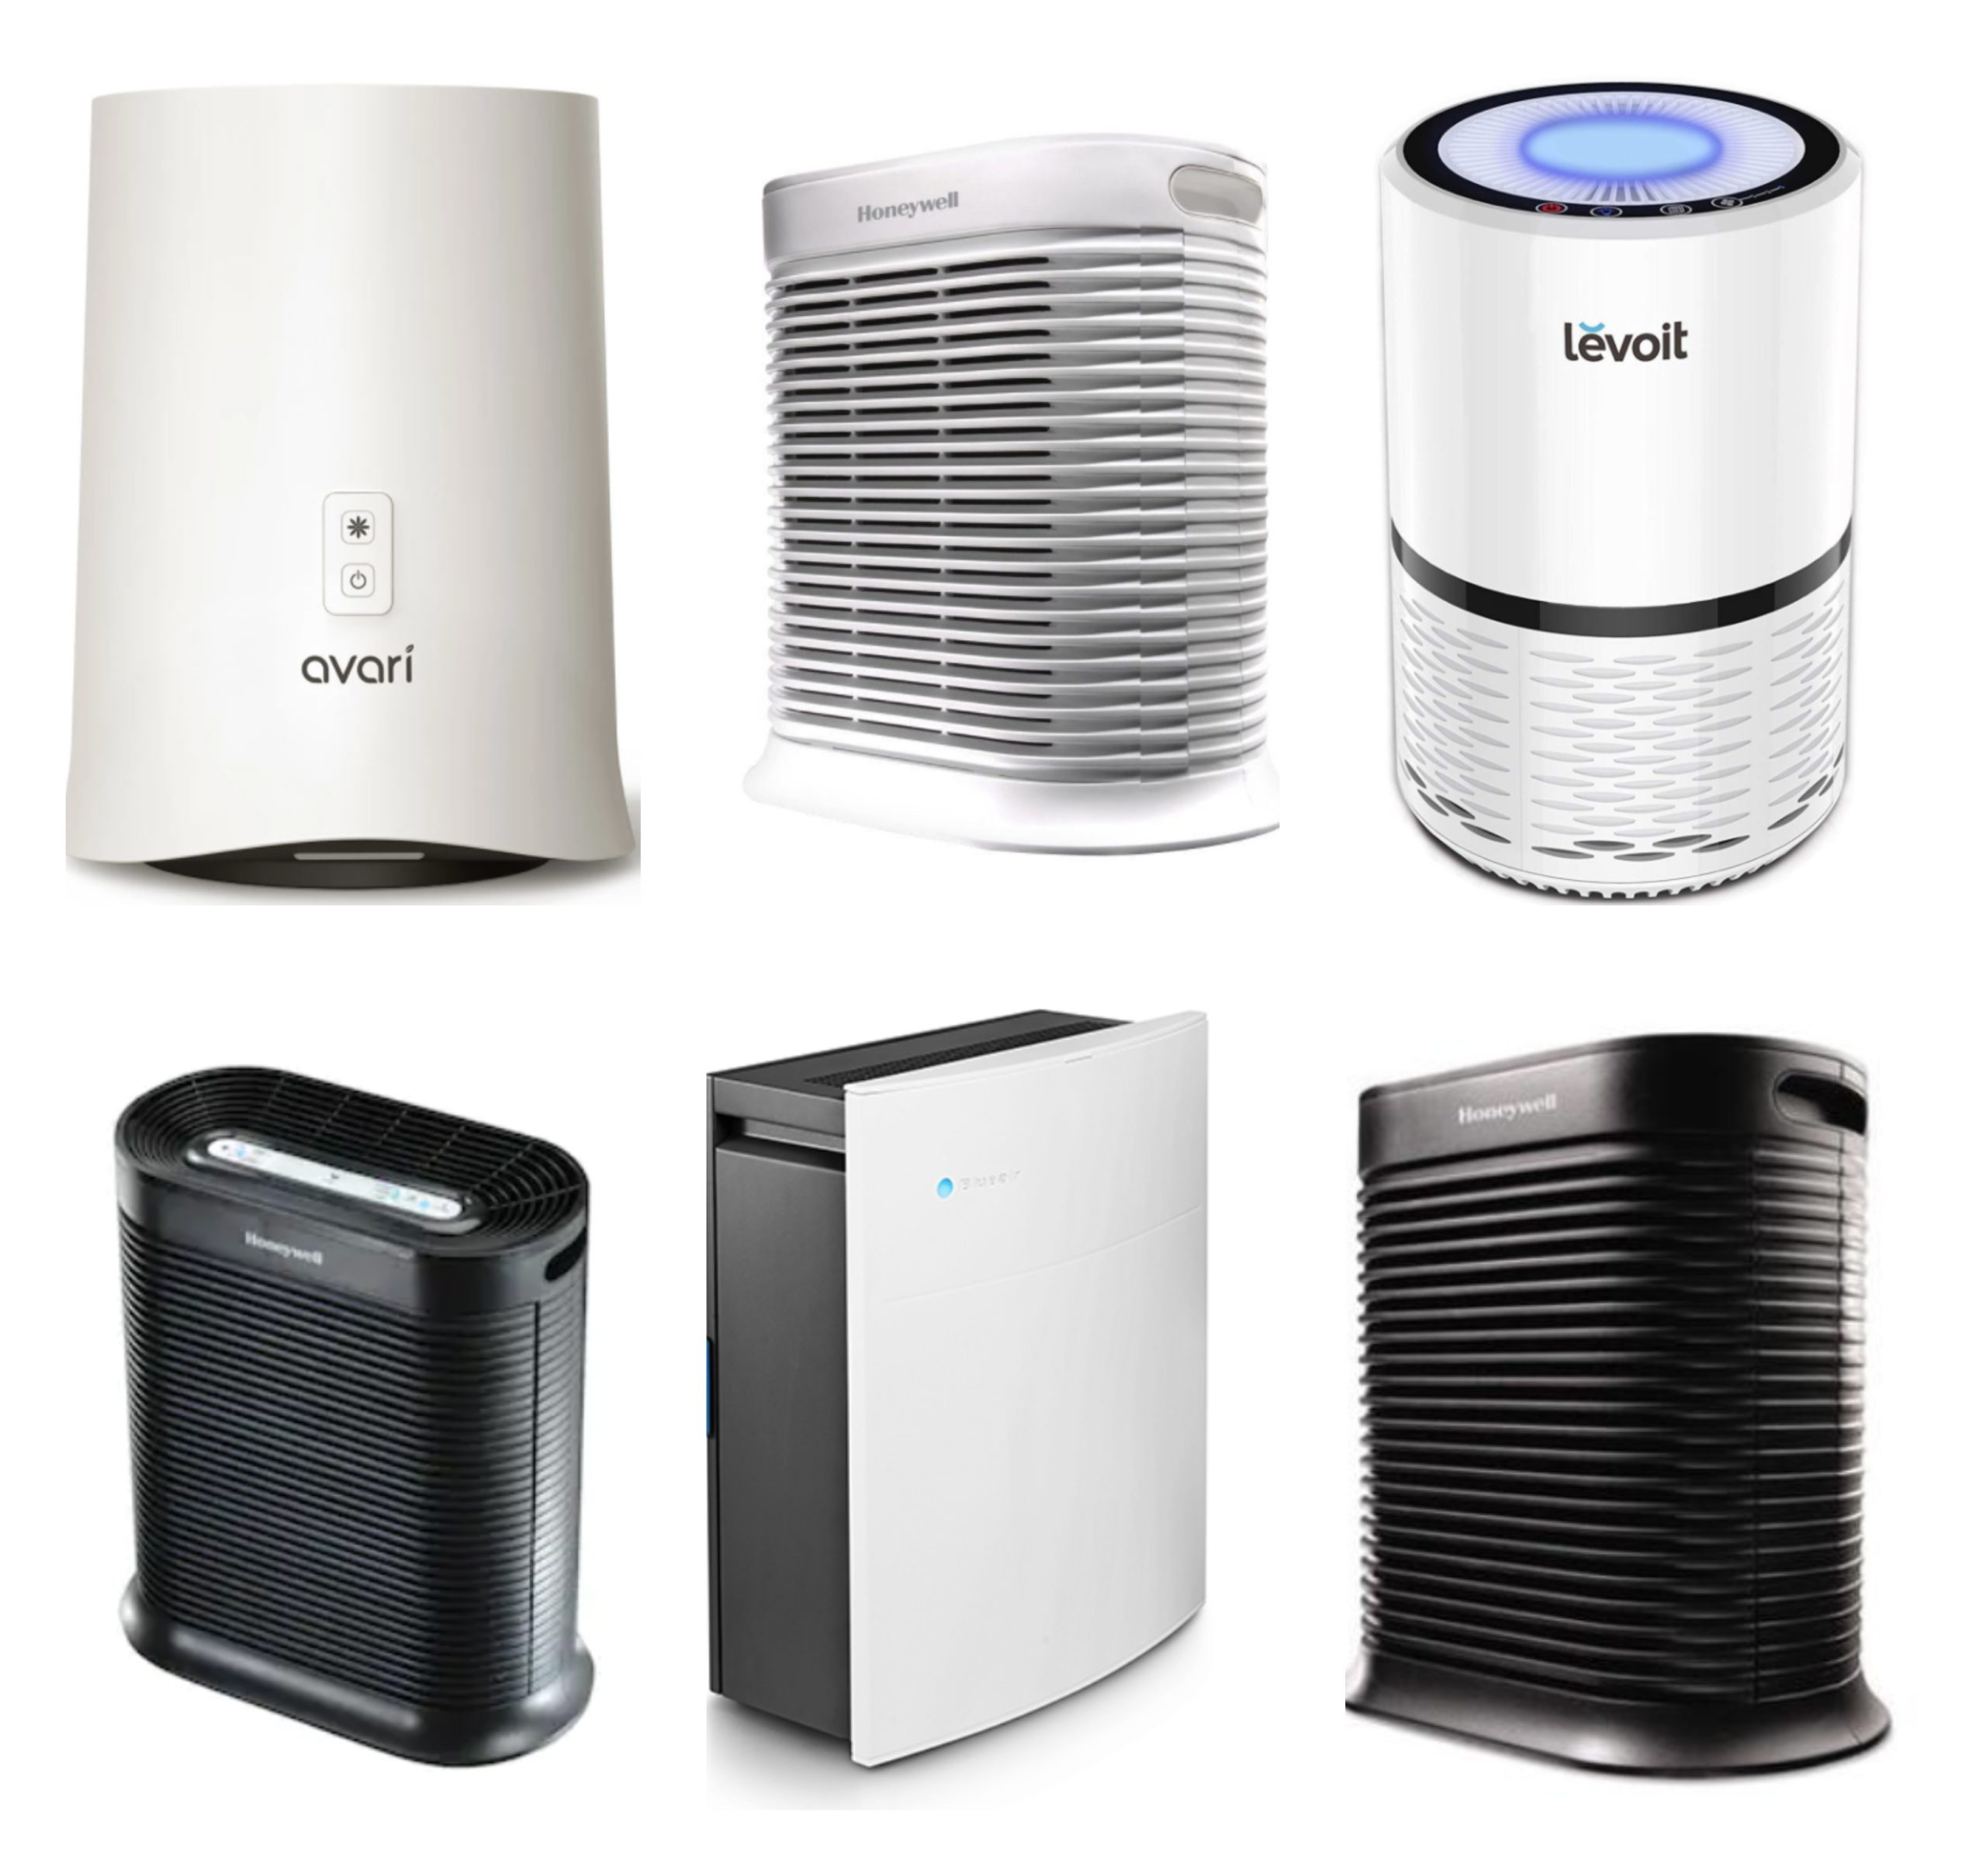 Compare air purifiers and save money on your electricity bill